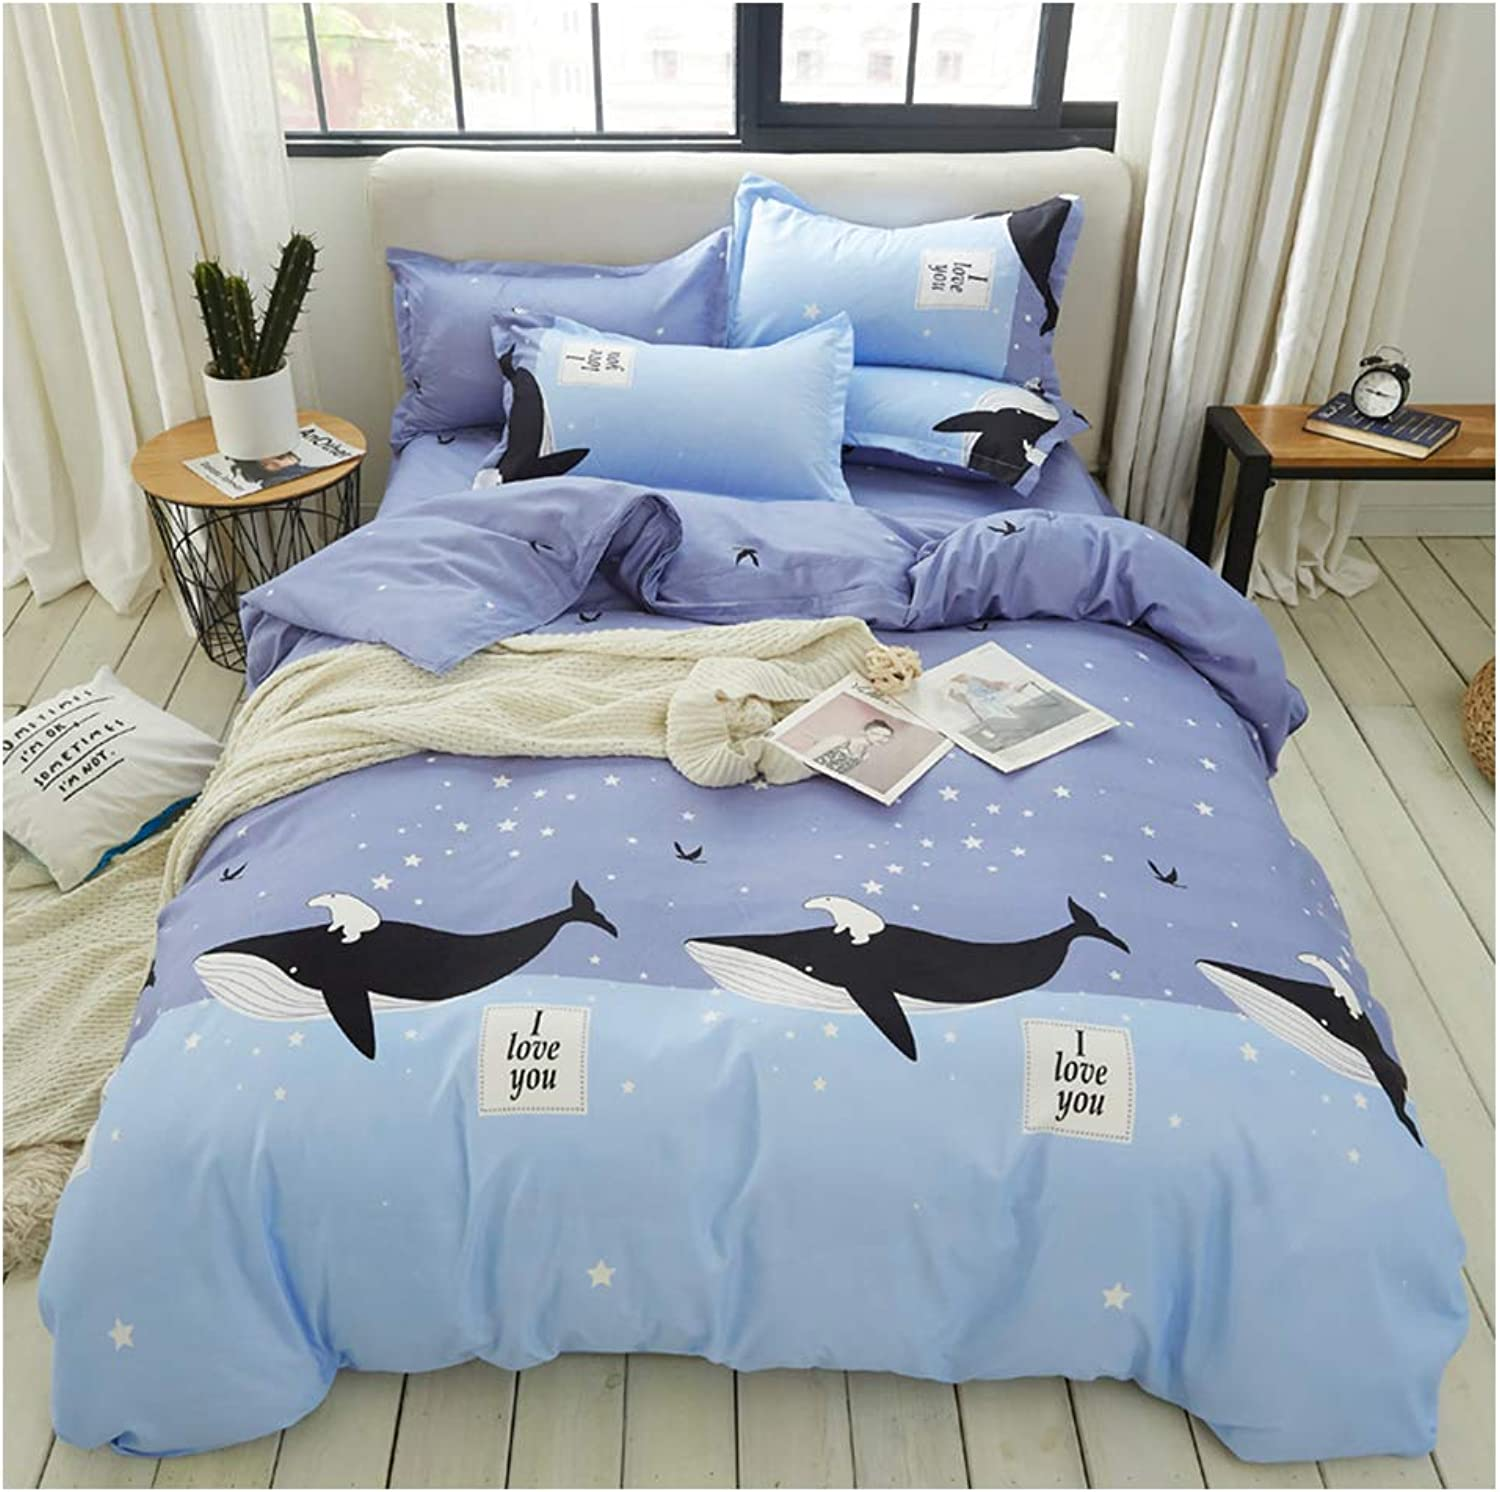 ORIHOME Bedding Set Twin Full Queen King Prairie Animal Antelope Deer Print- 4 Piece Bedding Sets - Teen Bedding for Girls Bedroom(Without Quilts) YZ (Dolphin,bluee, Queen,79''x91'')